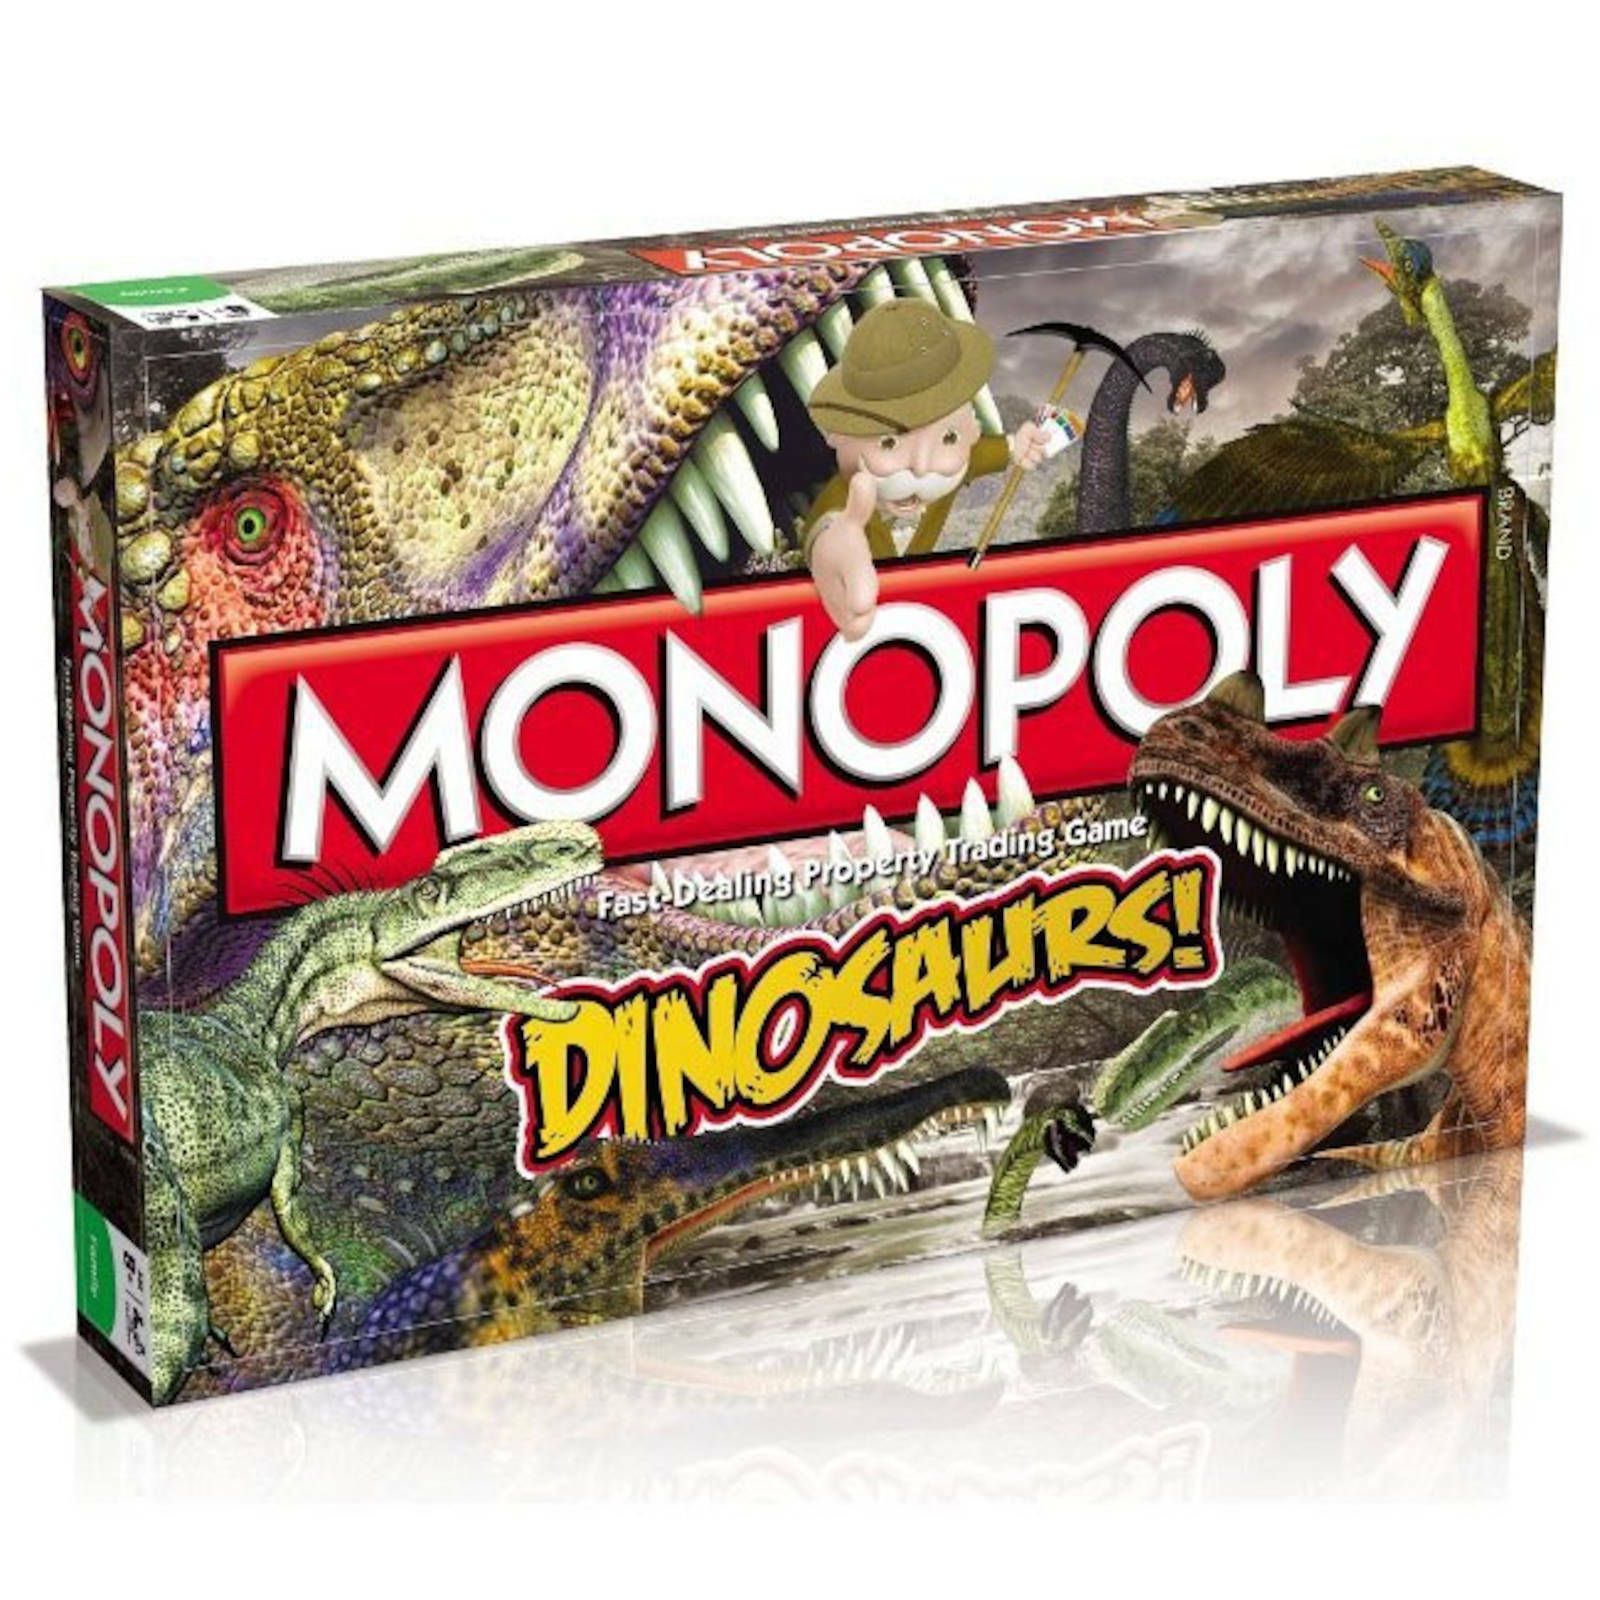 Monopoly Dinosaurs Edition Board Game by Winning Moves